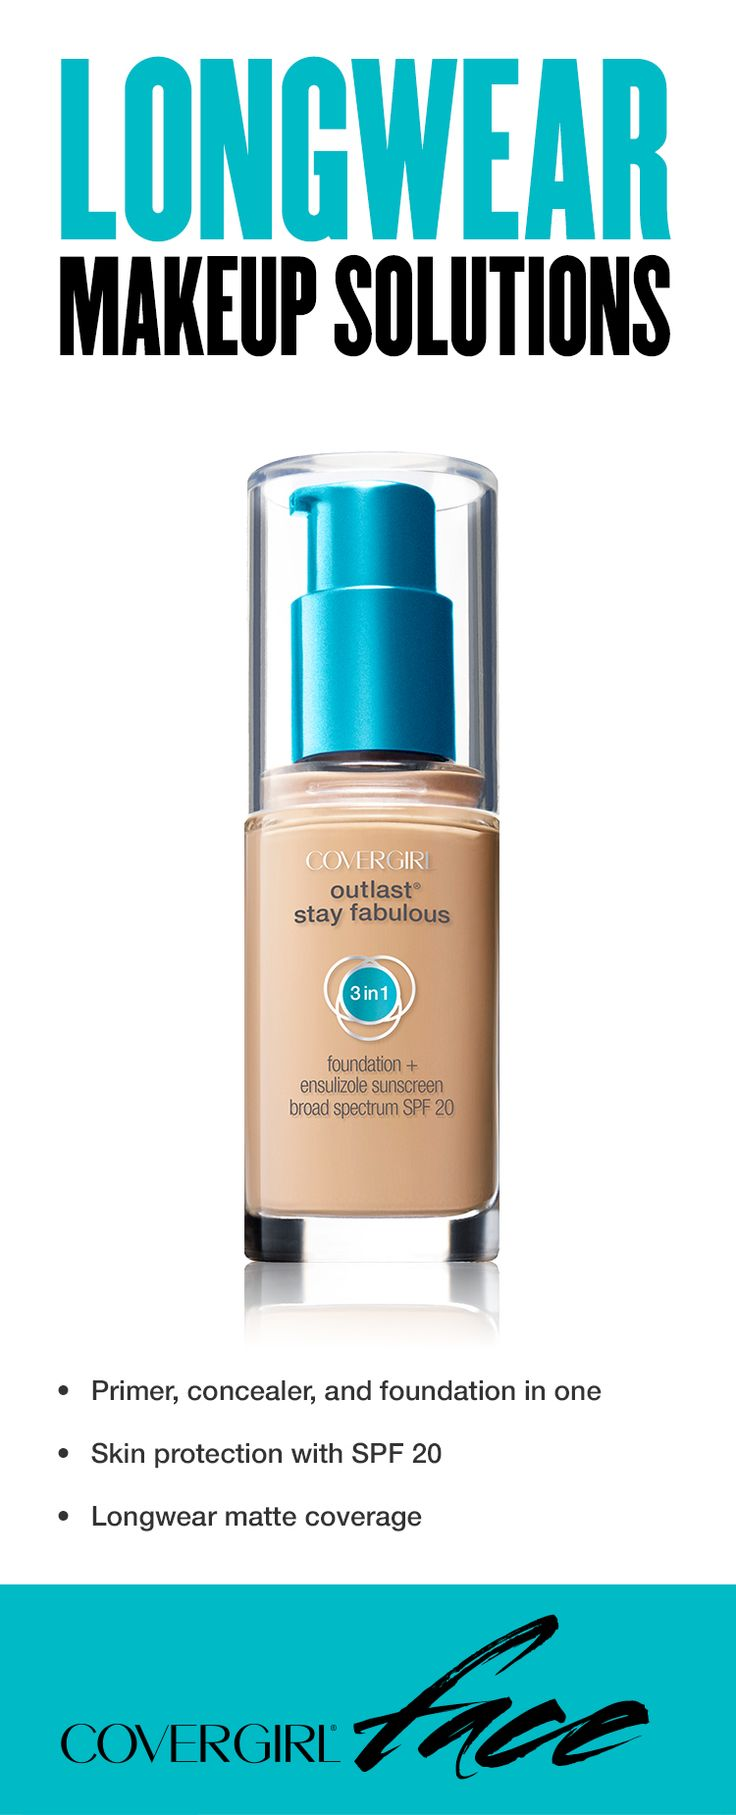 For a matte, longwear look that lasts, try makeup that fuses primer, concealer, and foundation in one easy step. Outlast Stay Fabulous 3-in-1 Foundation gives skin a matte finish that doesn't look heavy, unlike other matte foundations.• Primer, concealer, and foundation in one • Skin protection with SPF 20 • Longwear matte coverage